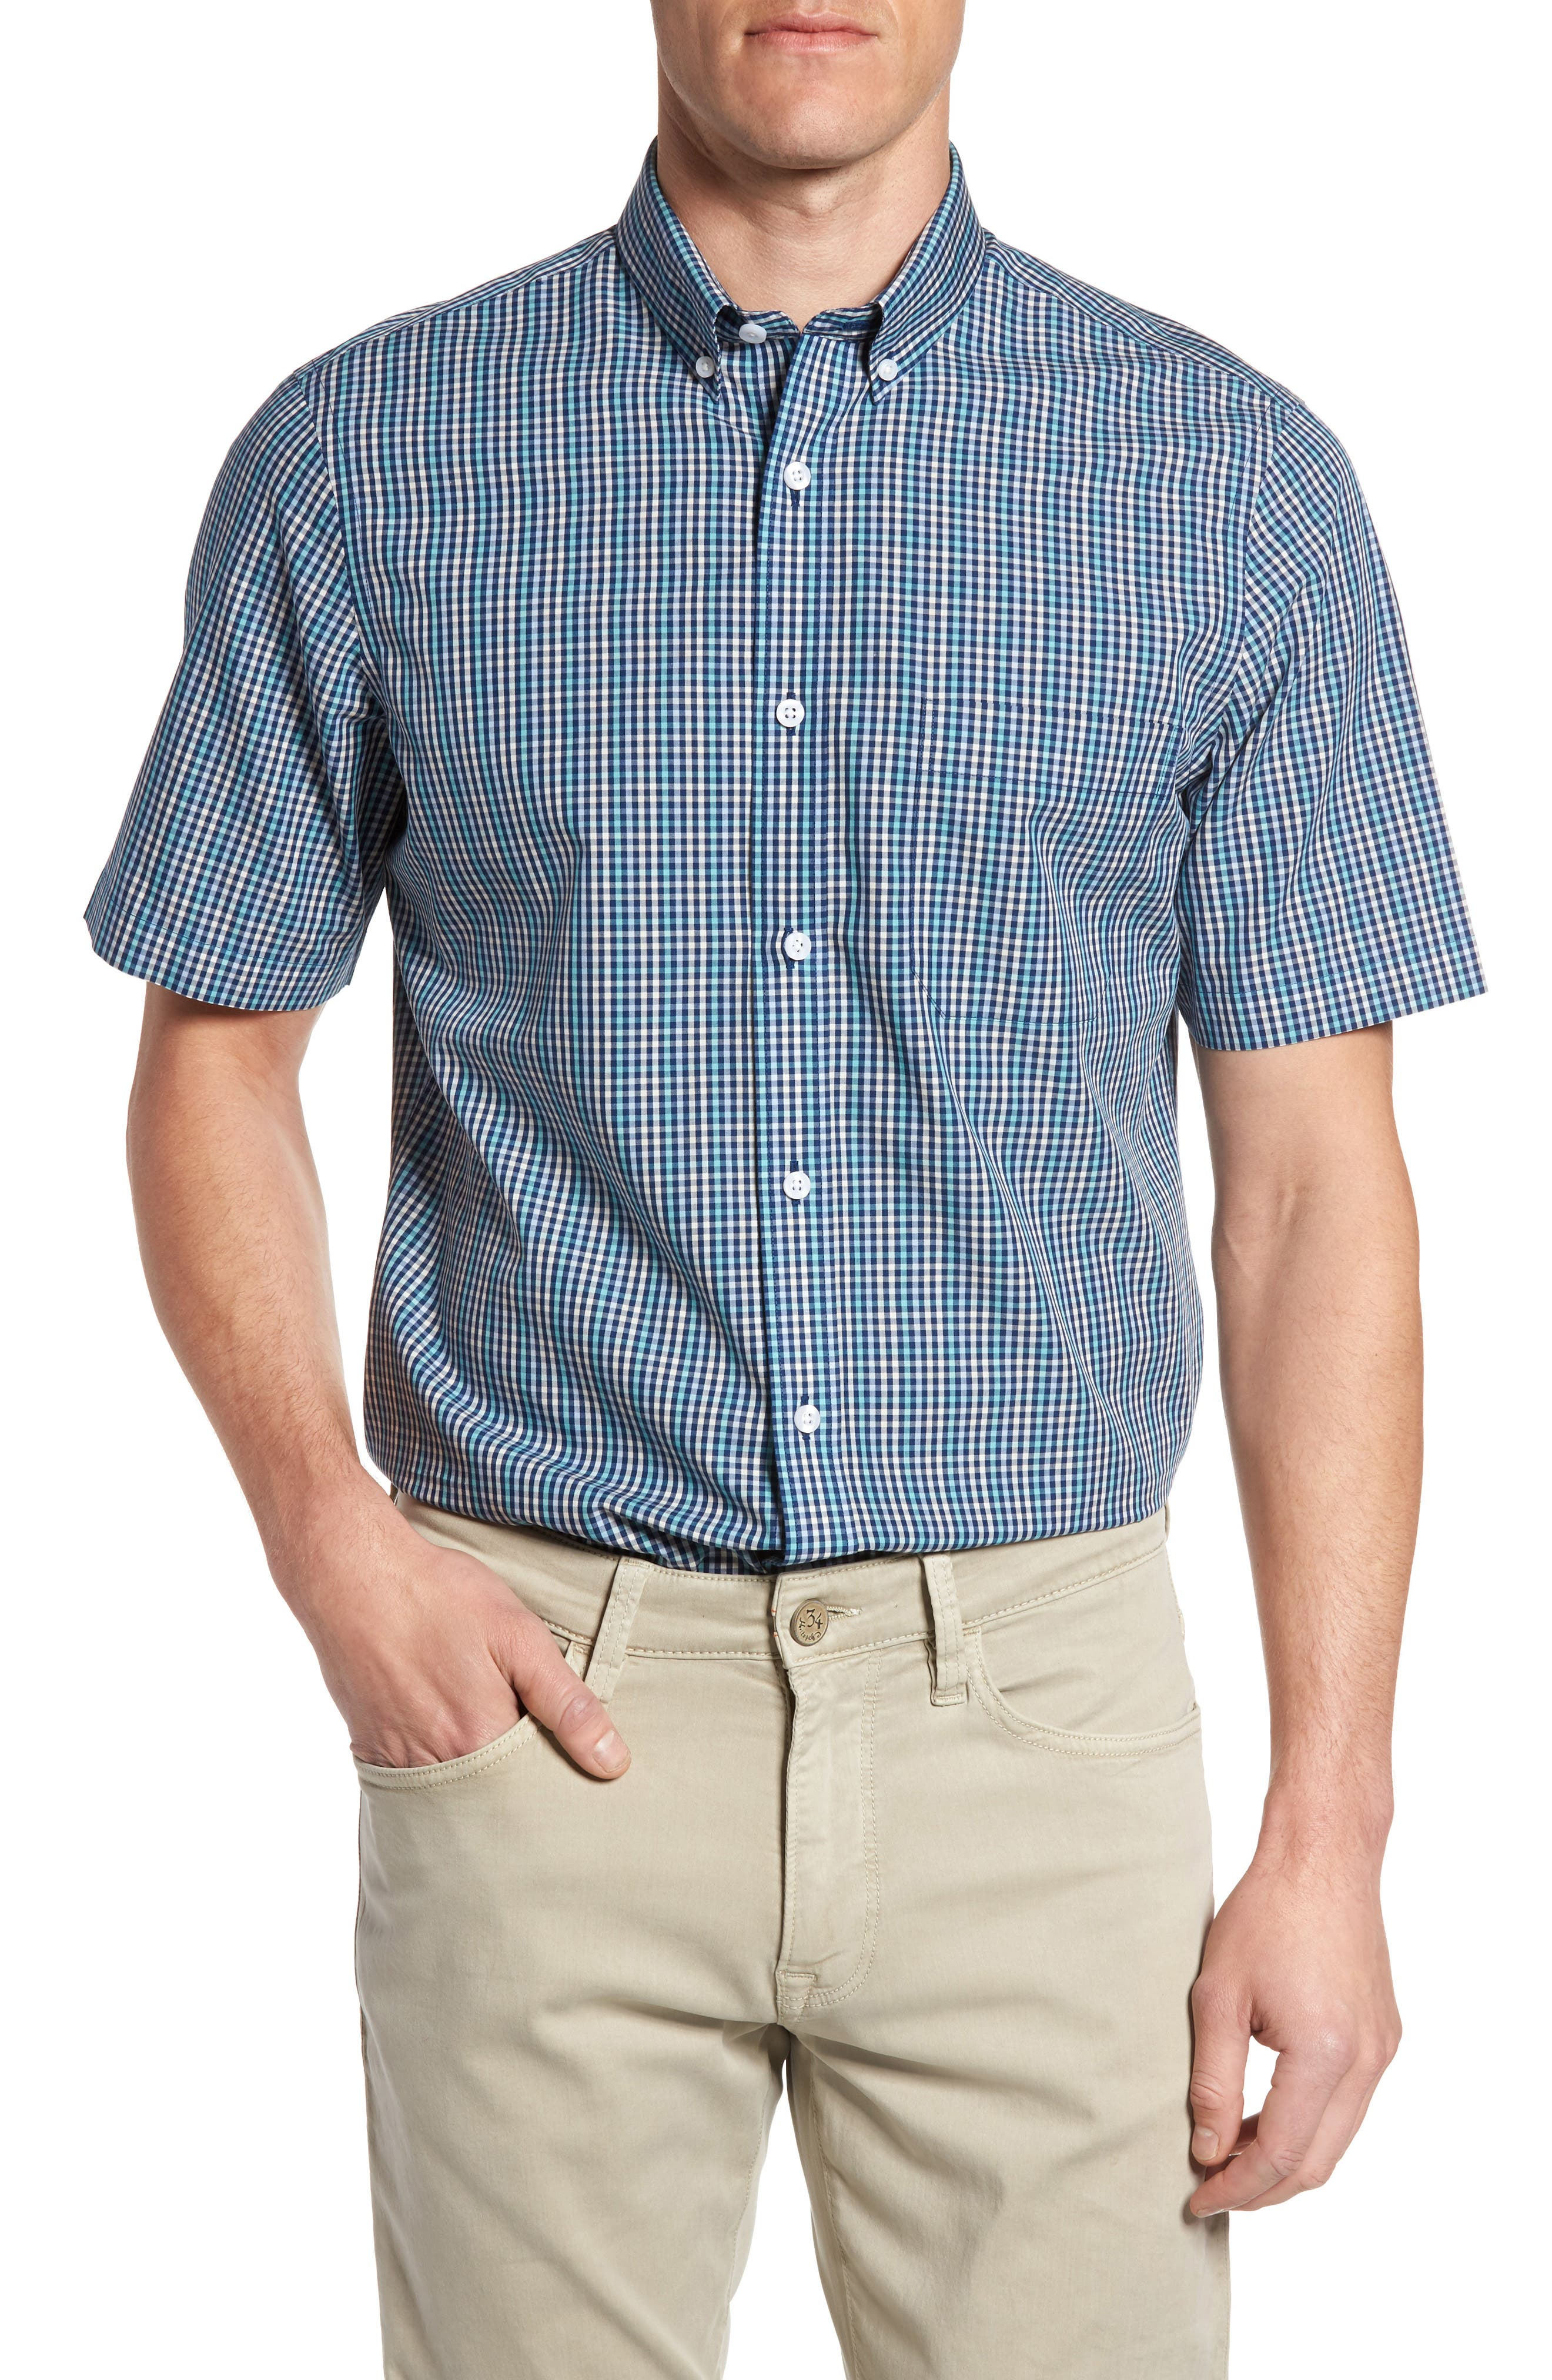 NORDSTROM MENS SHOP Smartcare<sup>™</sup> Regular Fit Check Sport Shirt